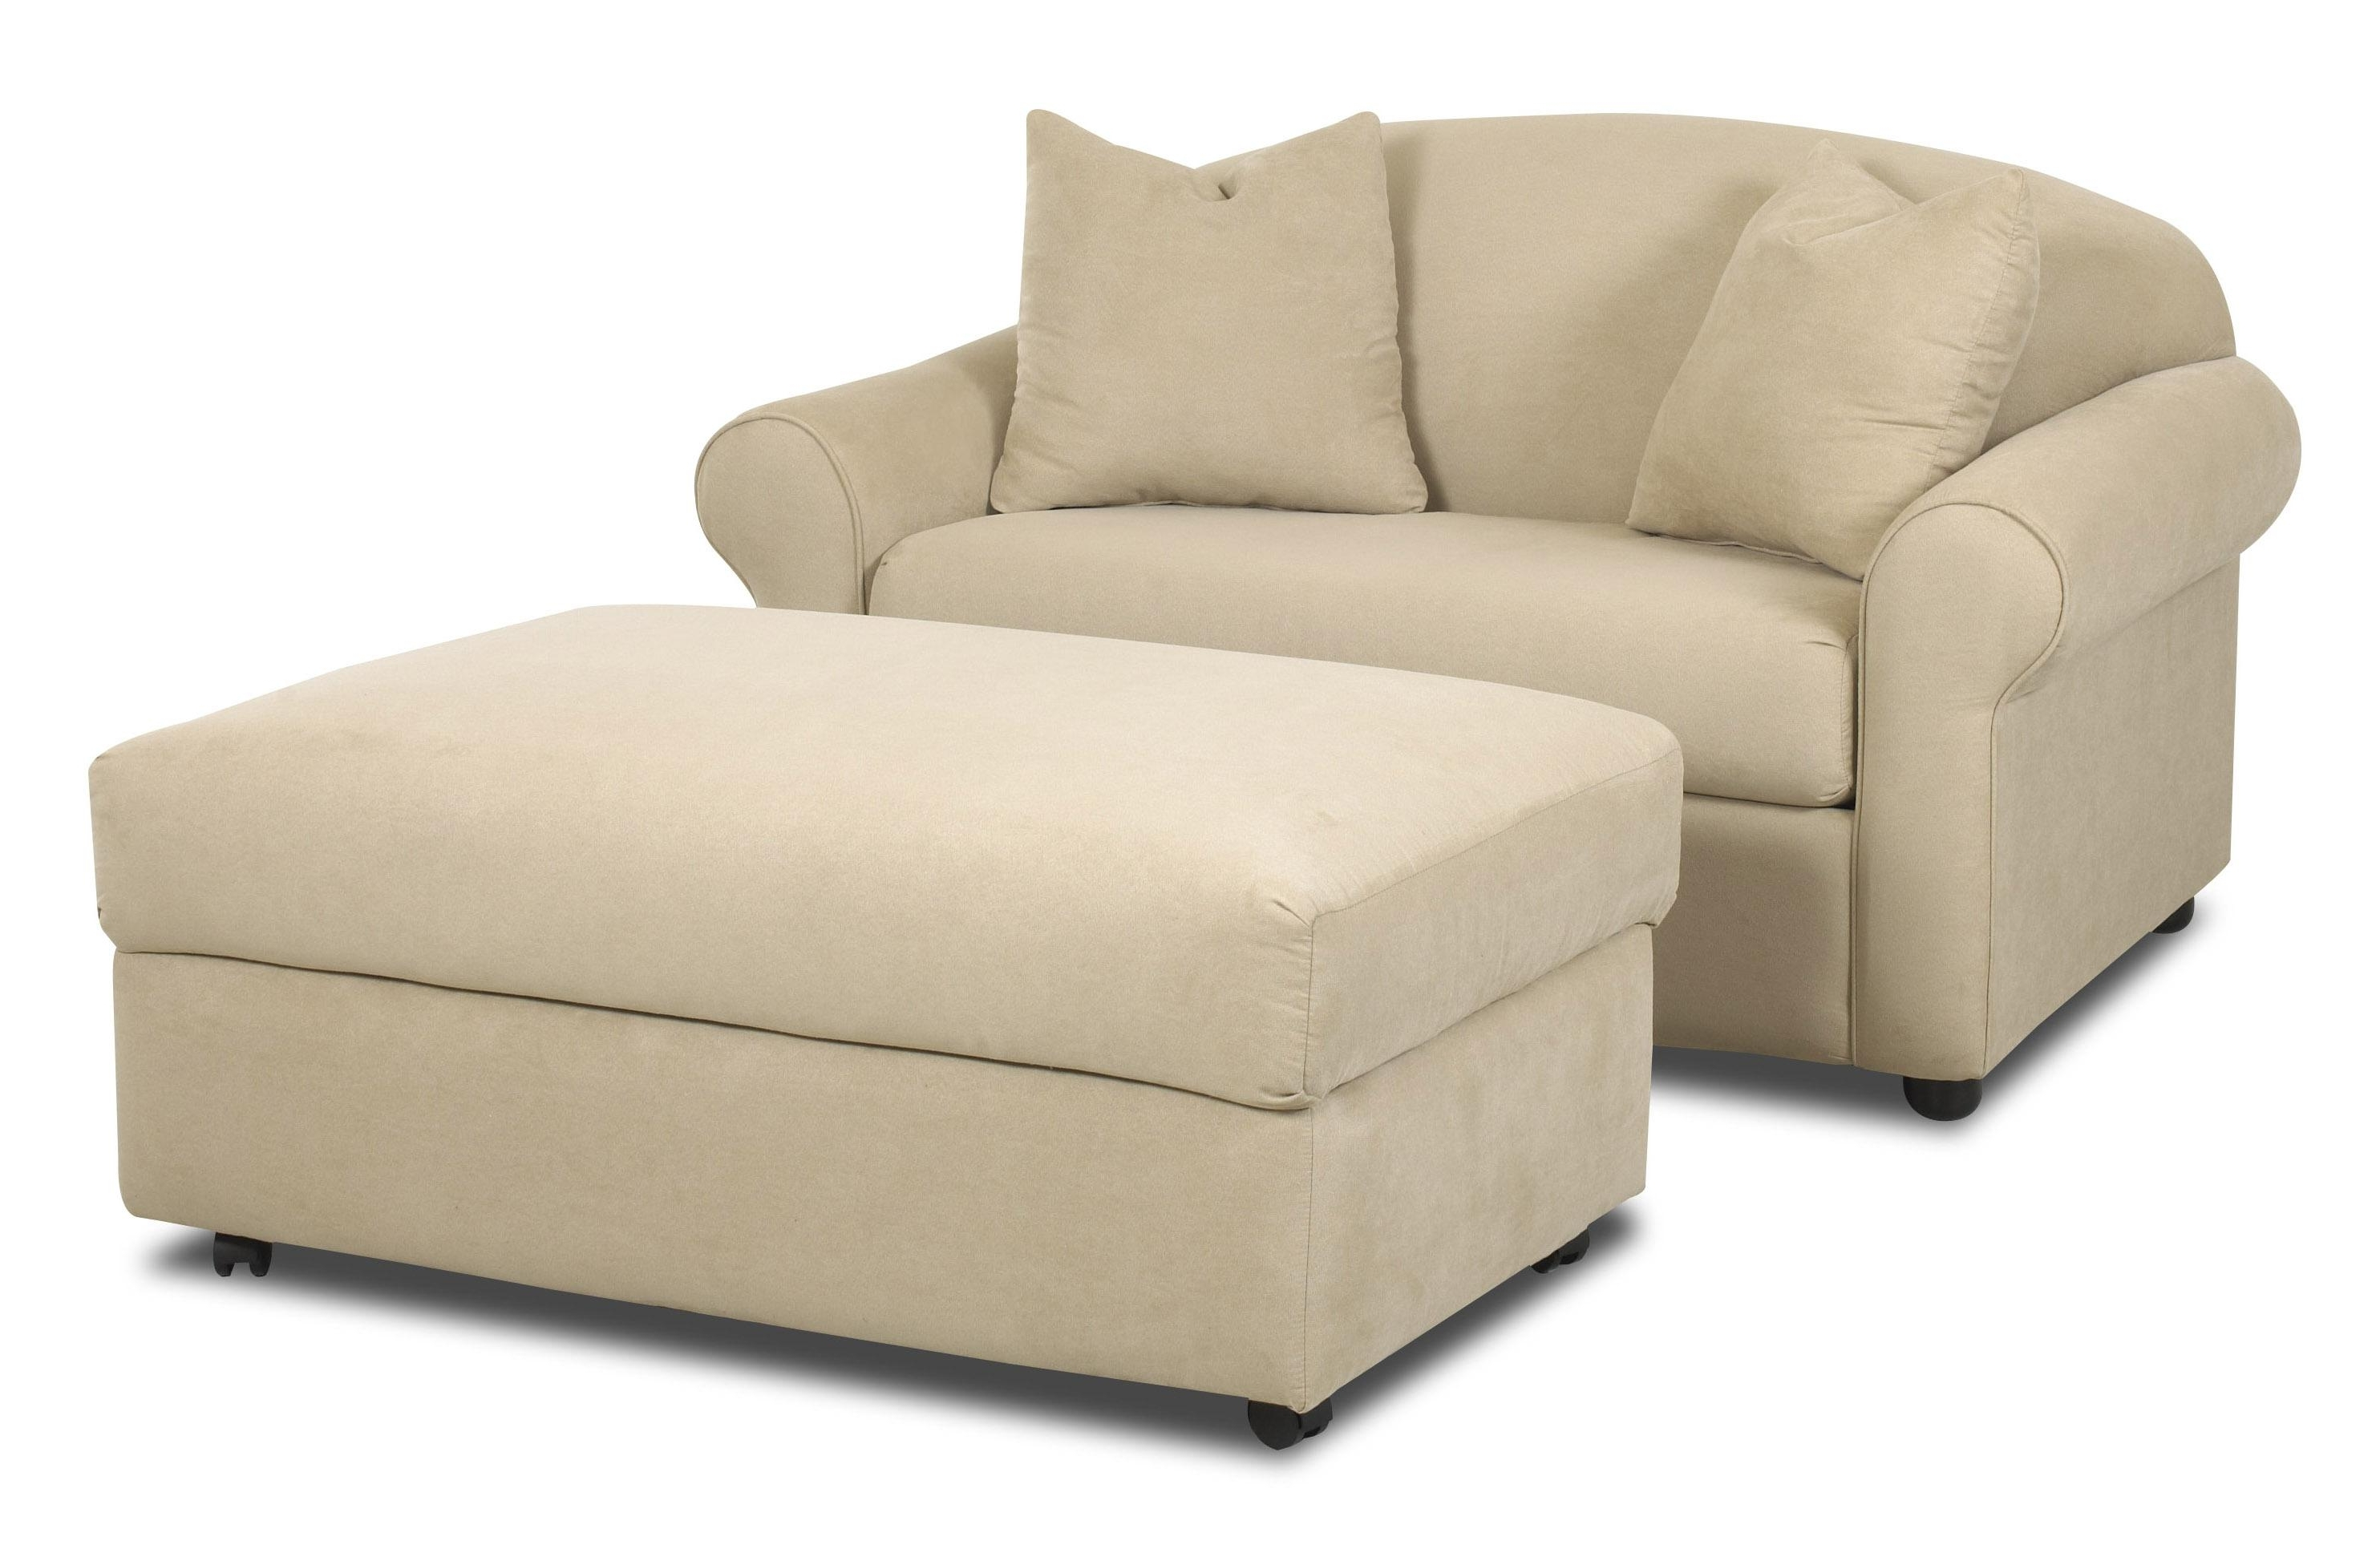 Small Sofas And Chairs With Famous Small Sleeper Sofa Chairs With Wingback And White Fabric Cover (View 14 of 15)